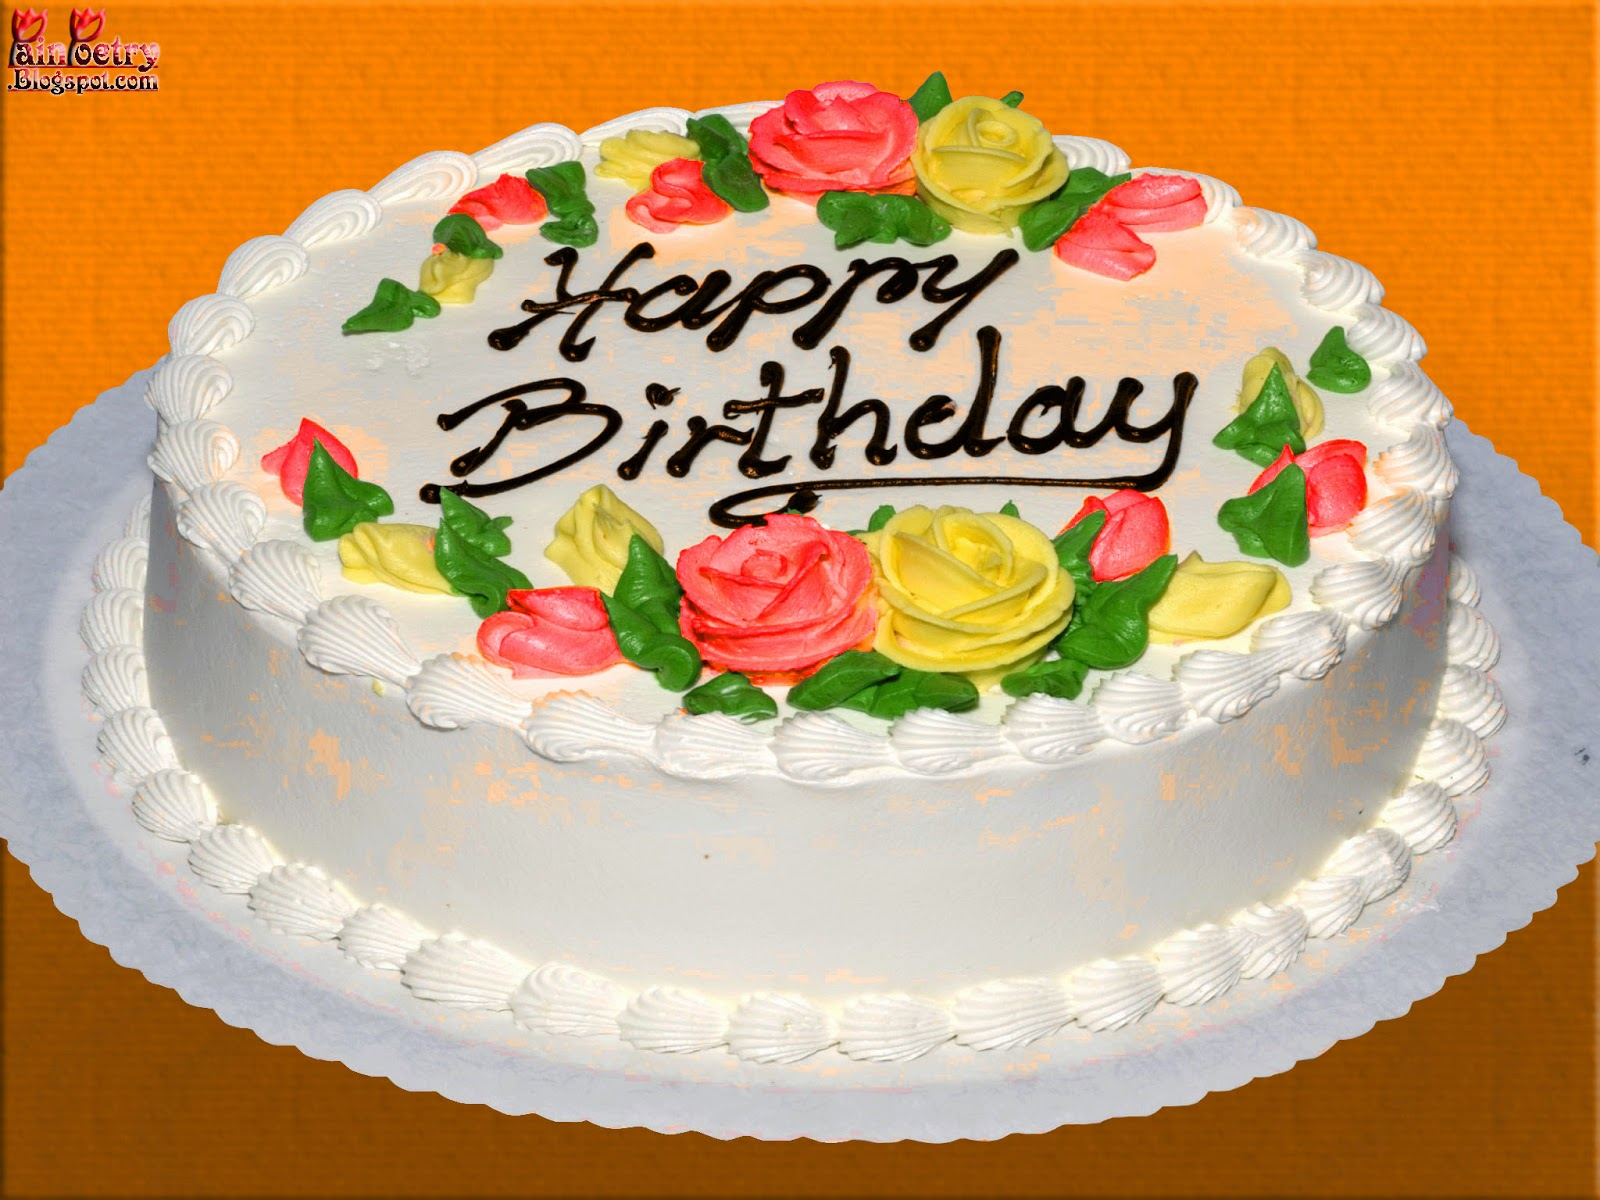 Happy-Birthday-Cake-Wishes-Wallpaper-Image-HD-Wide